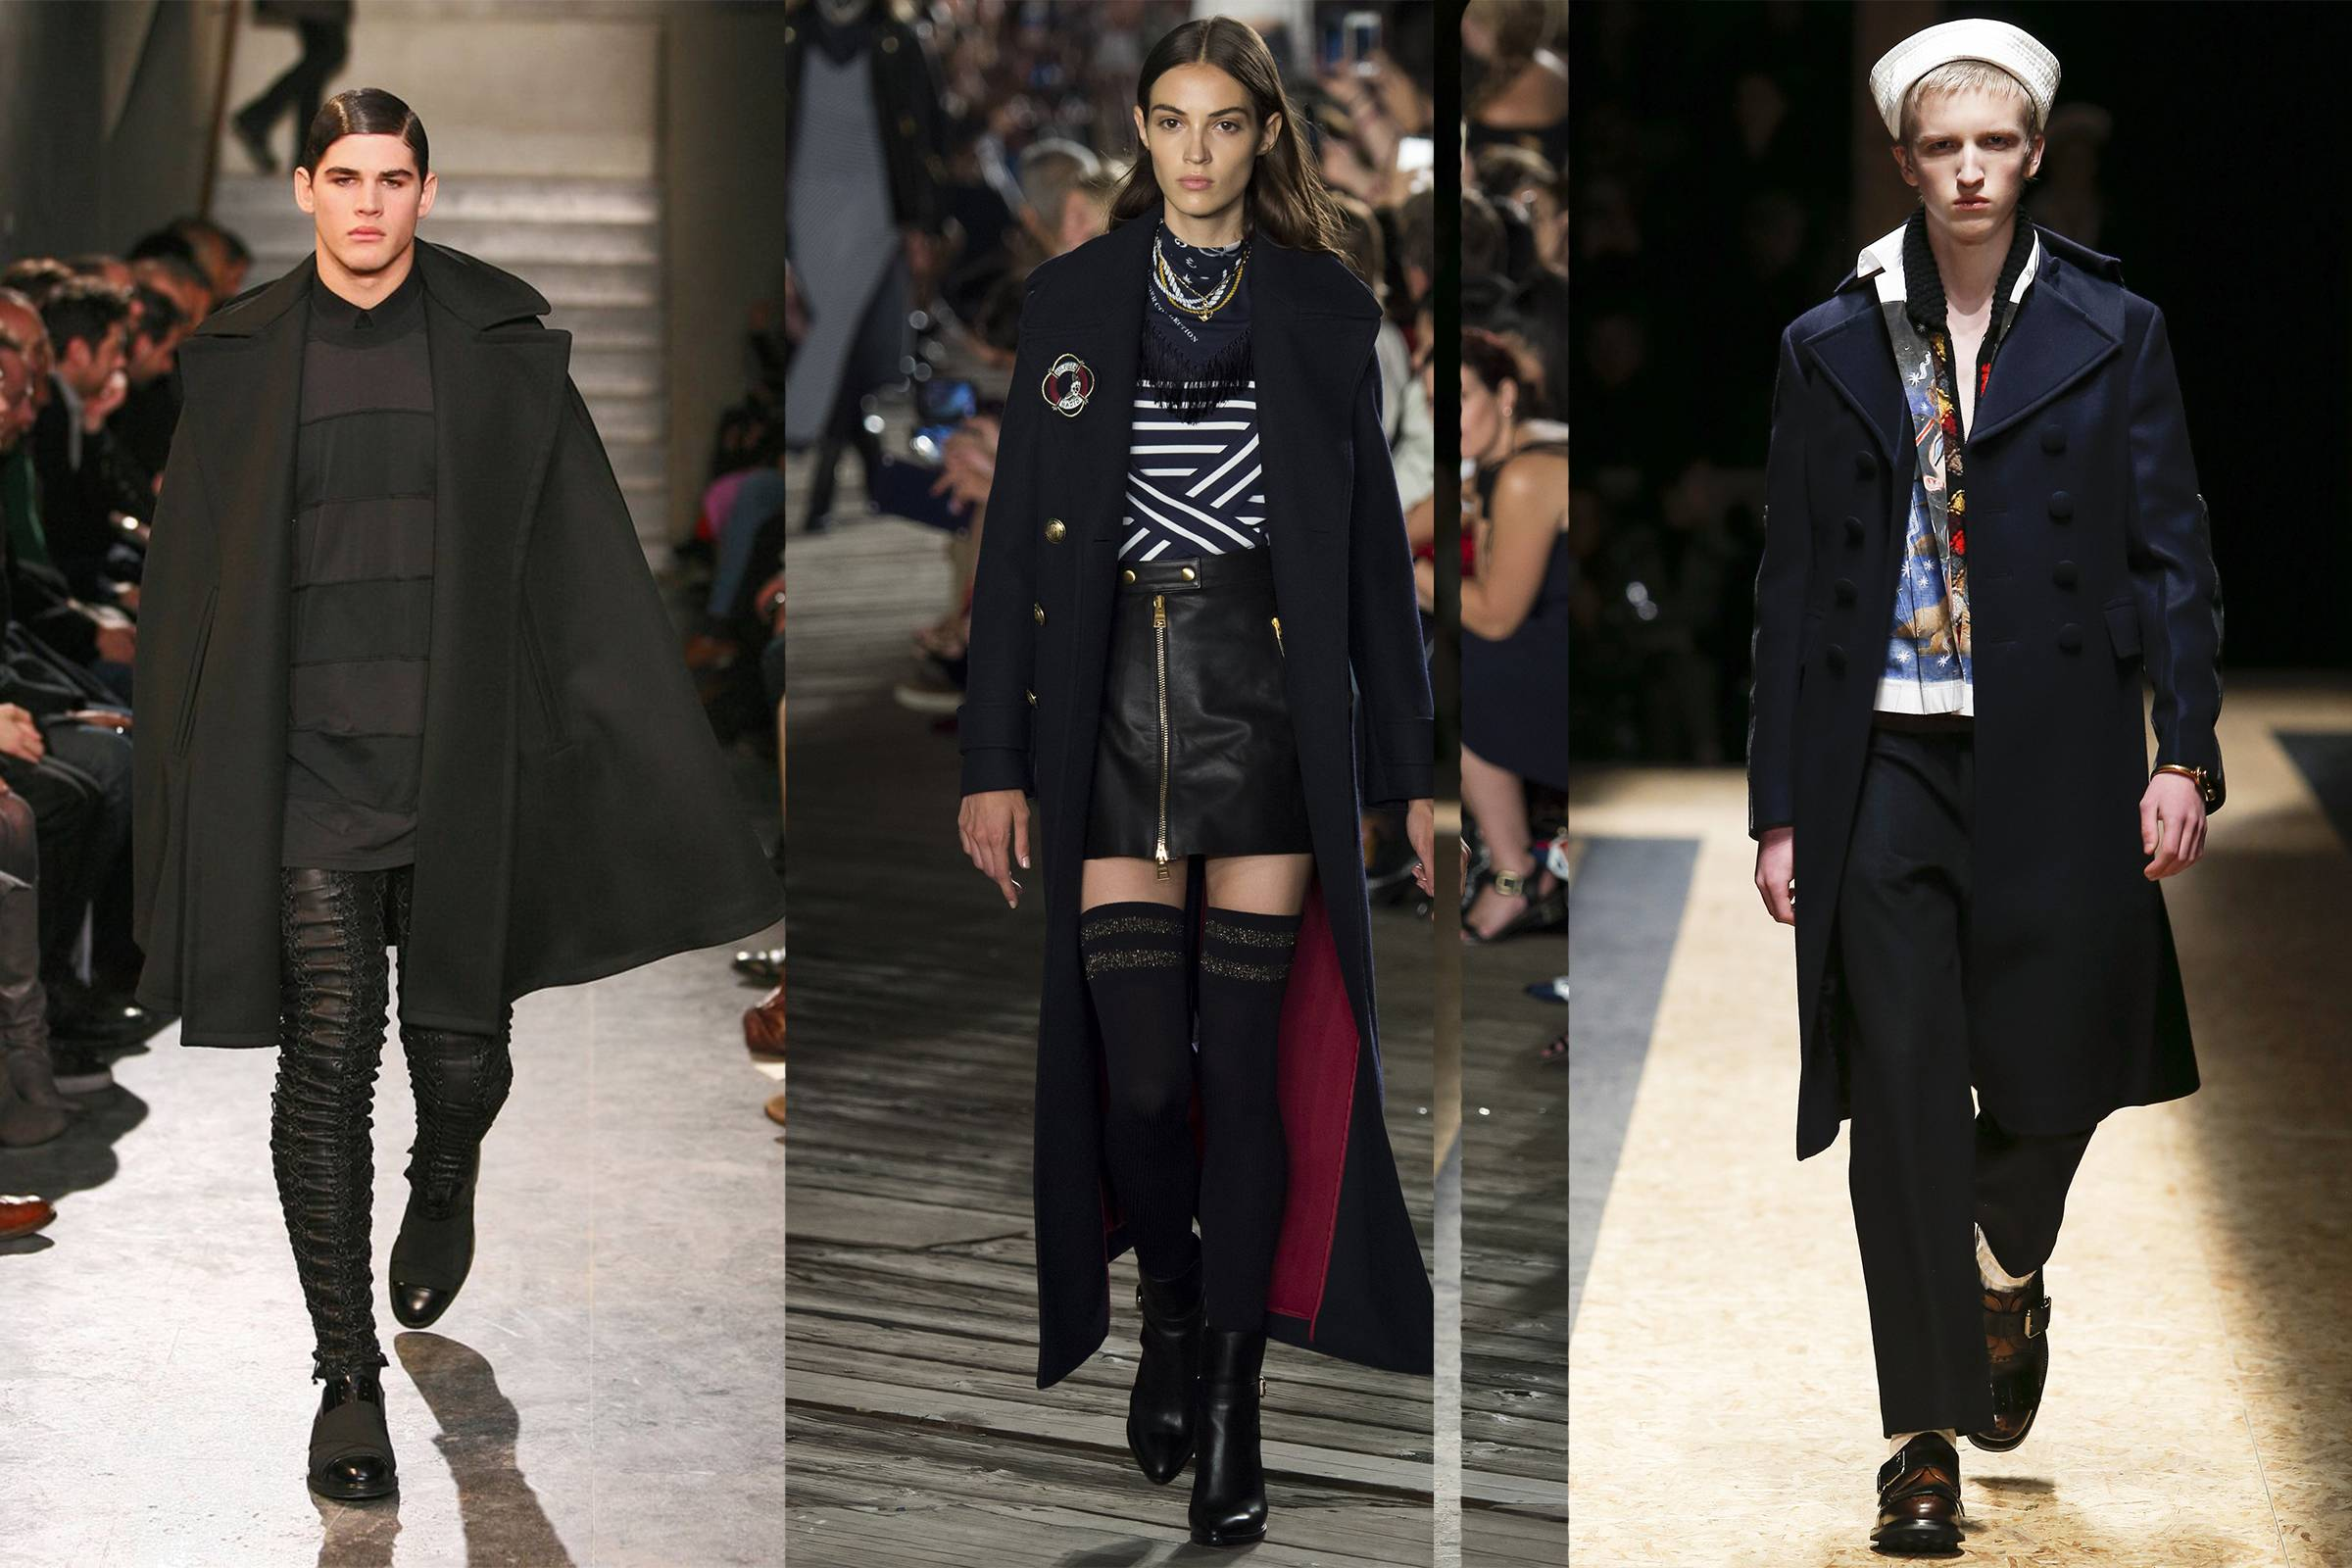 From left to right: Givenchy Fall 2009 Menswear; Tommy Hilfiger Fall 2016 Ready-to-Wear; Prada Fall 2016 Menswear